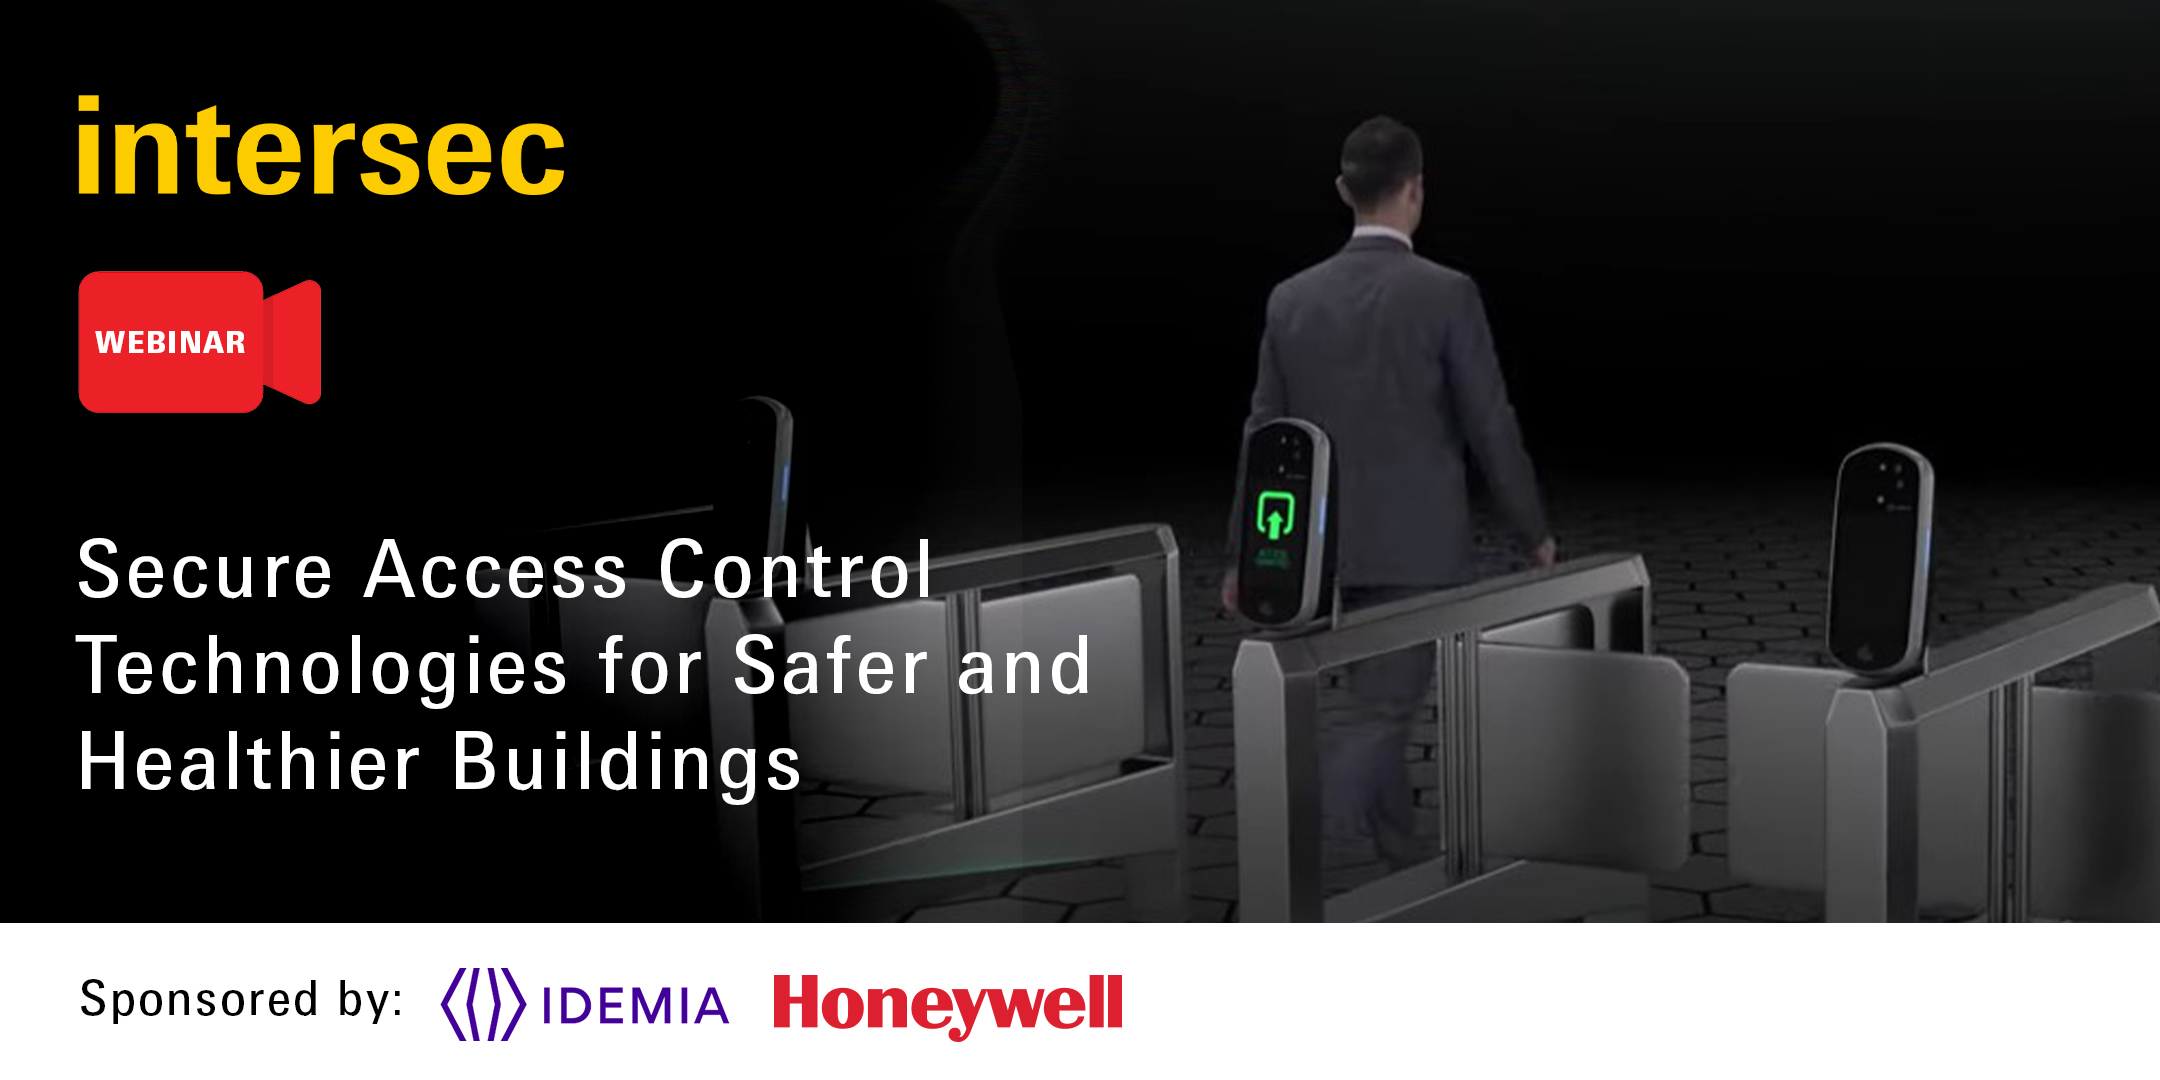 Secure Access Control Technologies for Safer and Healthier Buildings